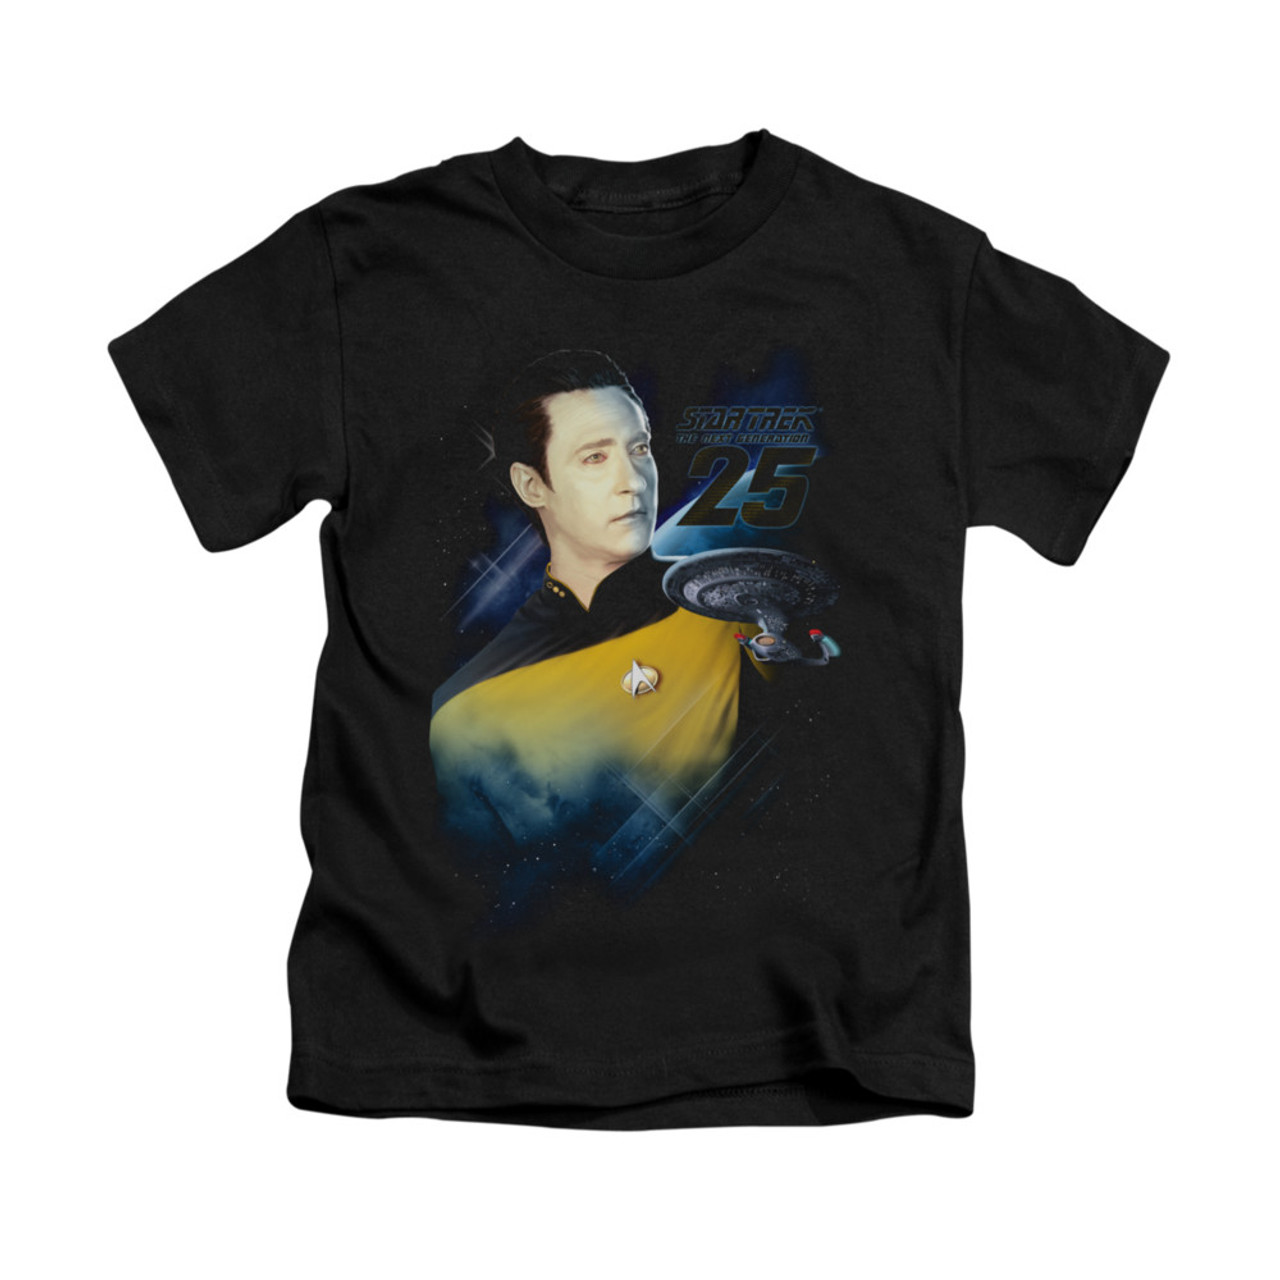 Star Trek The Next Generation Kids T-Shirt